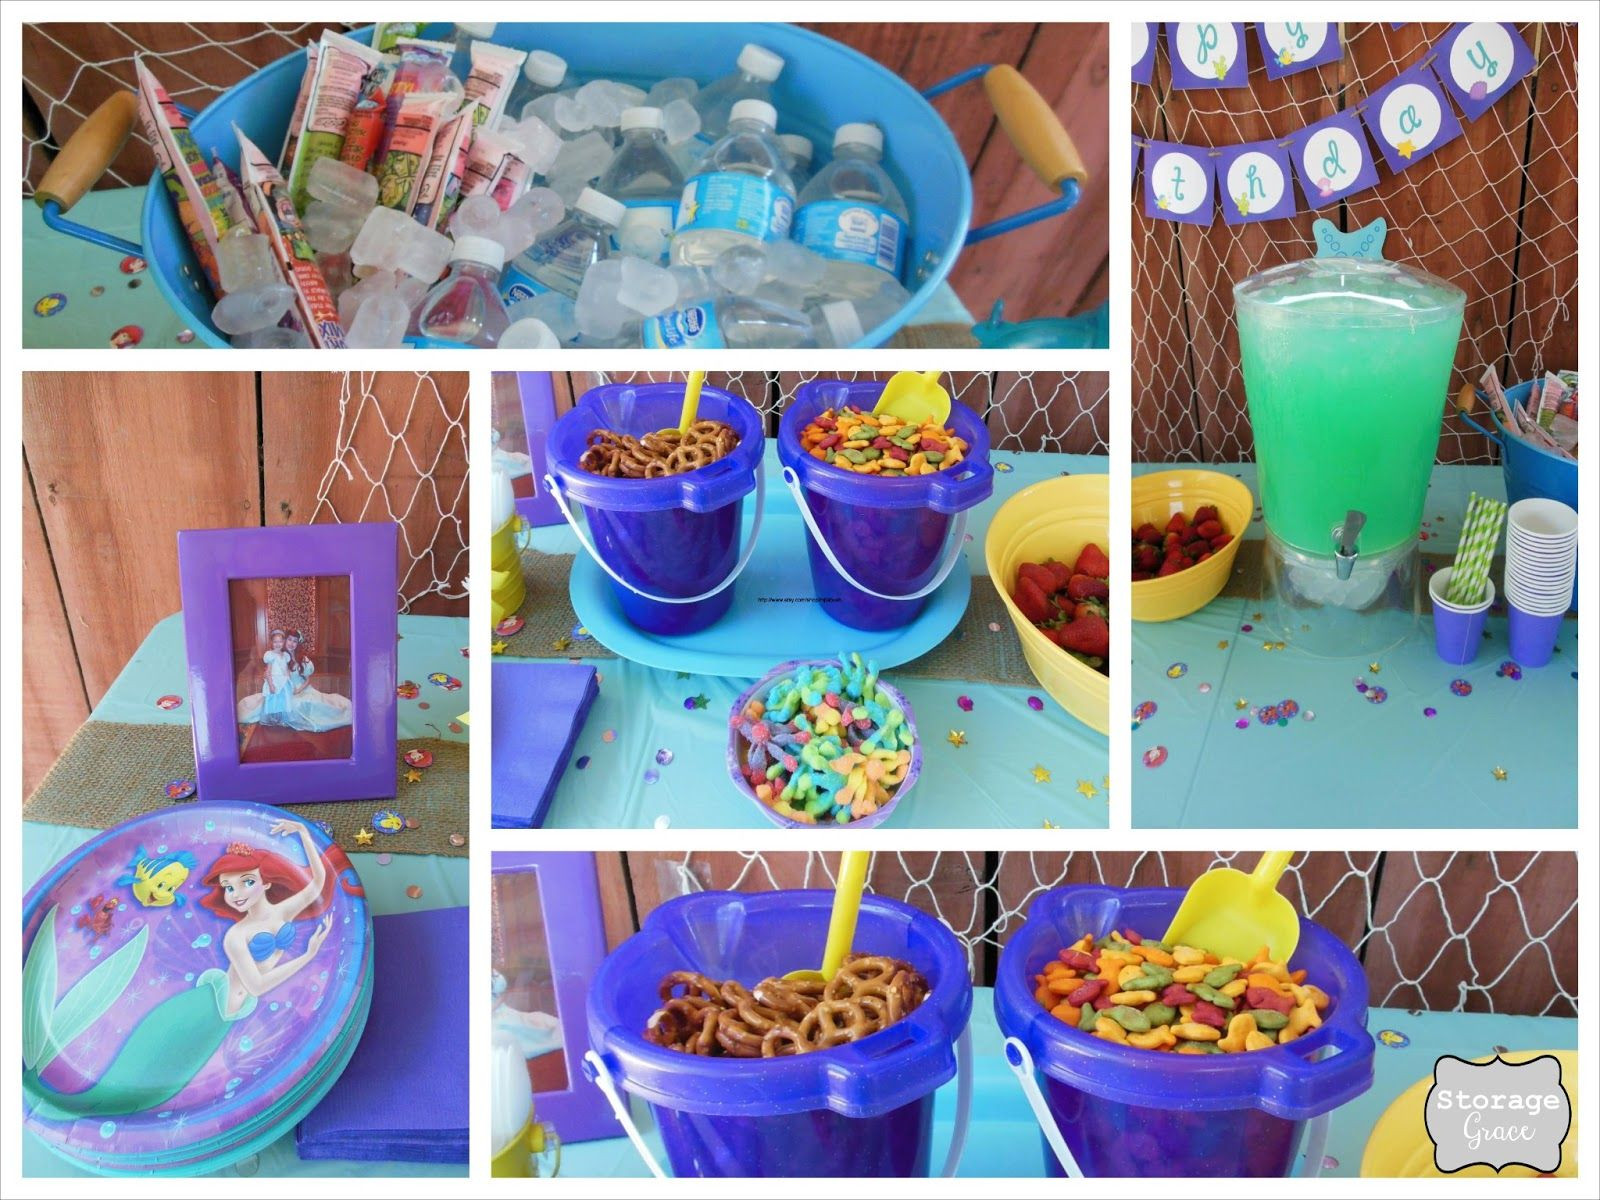 Mermaid Party Ideas 4 Year Old  Kylie turned 4 years old this past May and requested a